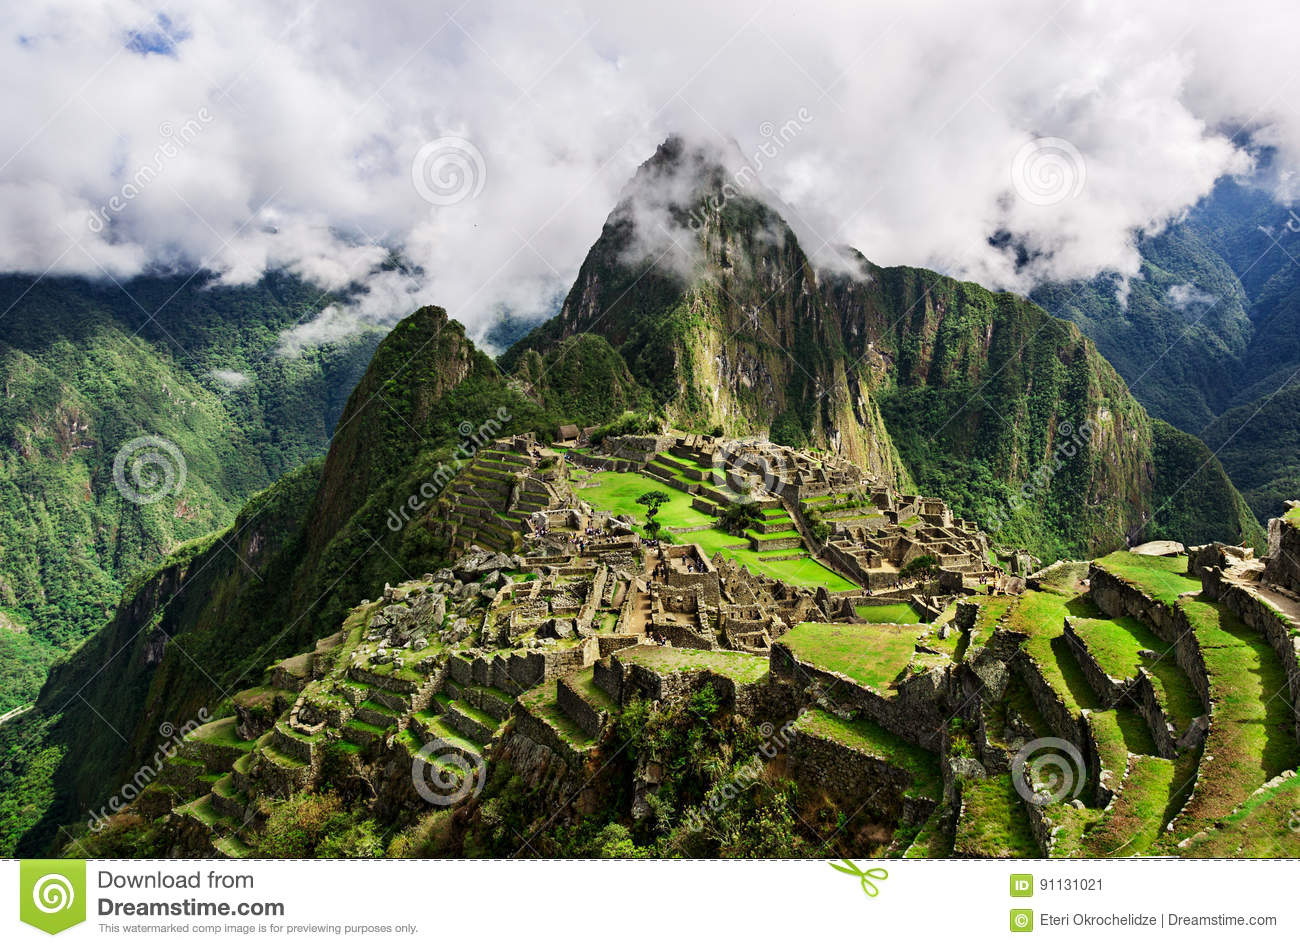 Machu Picchu, a Peruvian Historical Sanctuary in 1981 and a UNESCO World Heritage Site in 1983. One of the New Seven Wonders of th